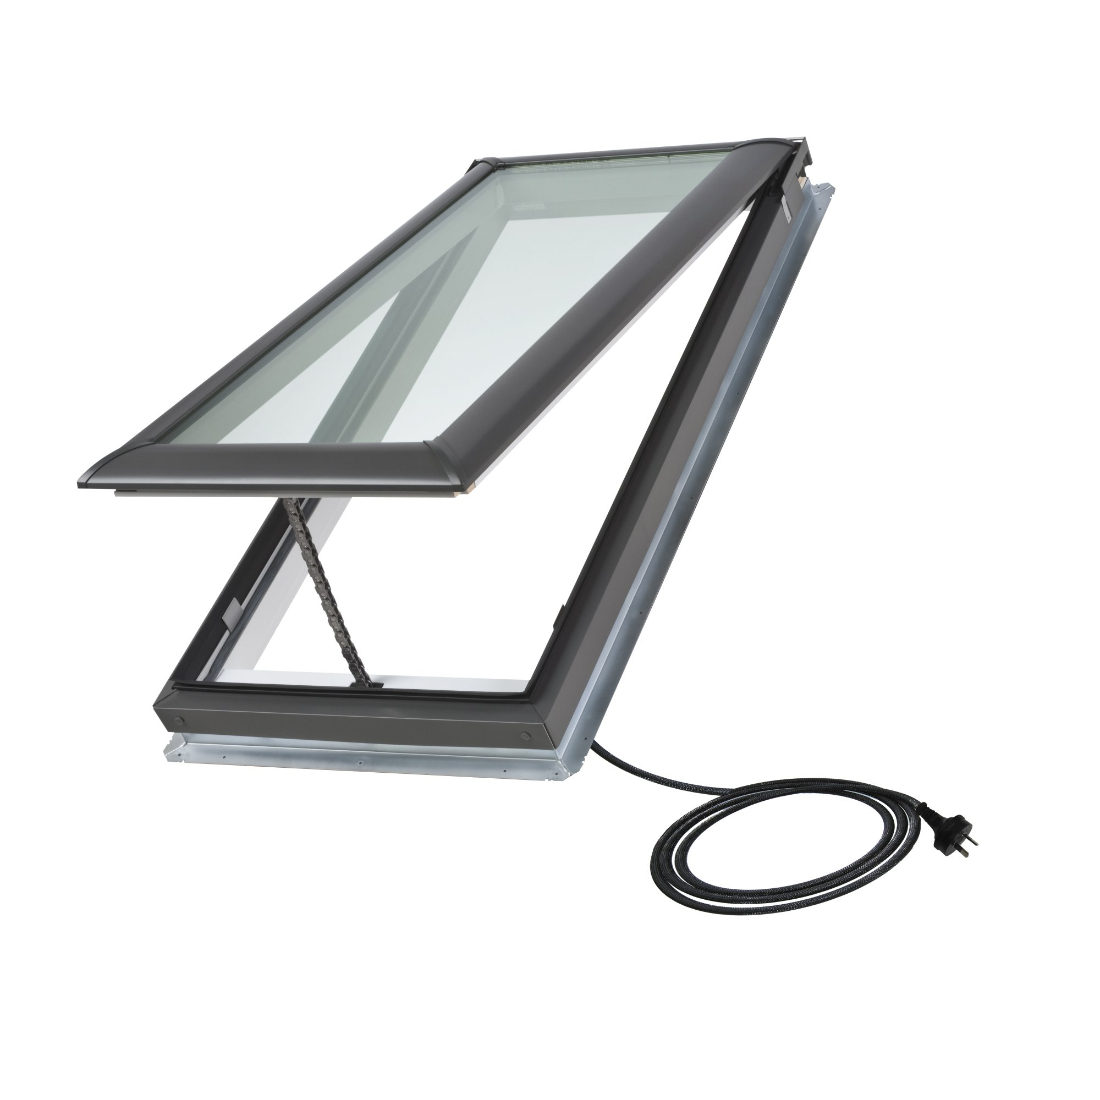 Electric Opening Skylight 550 x 980mm